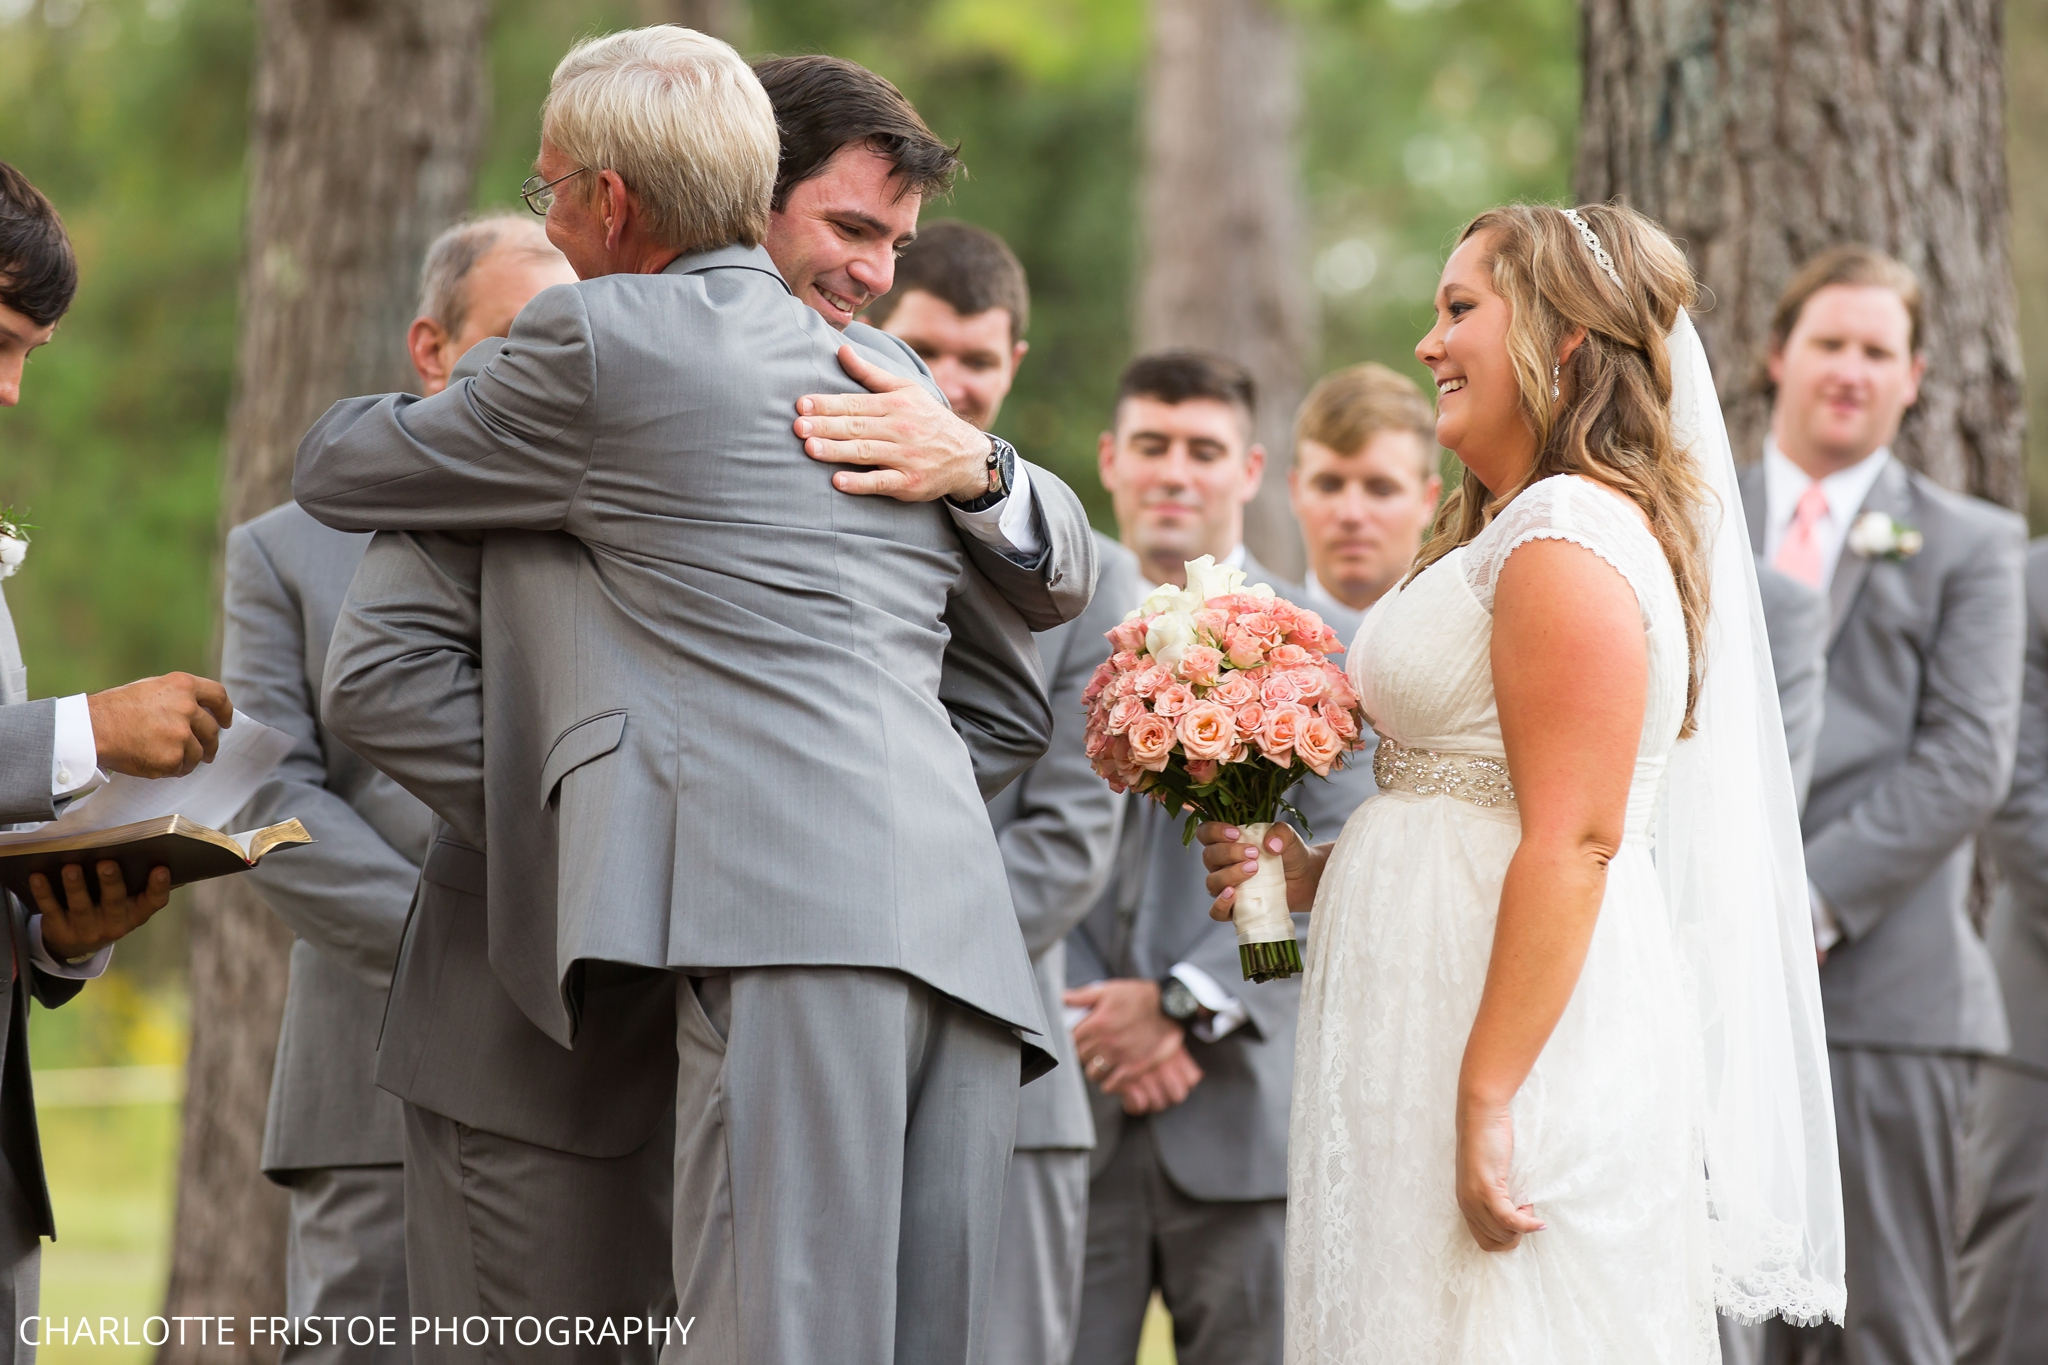 Loblolly_Plantation_Wedding-45.jpg